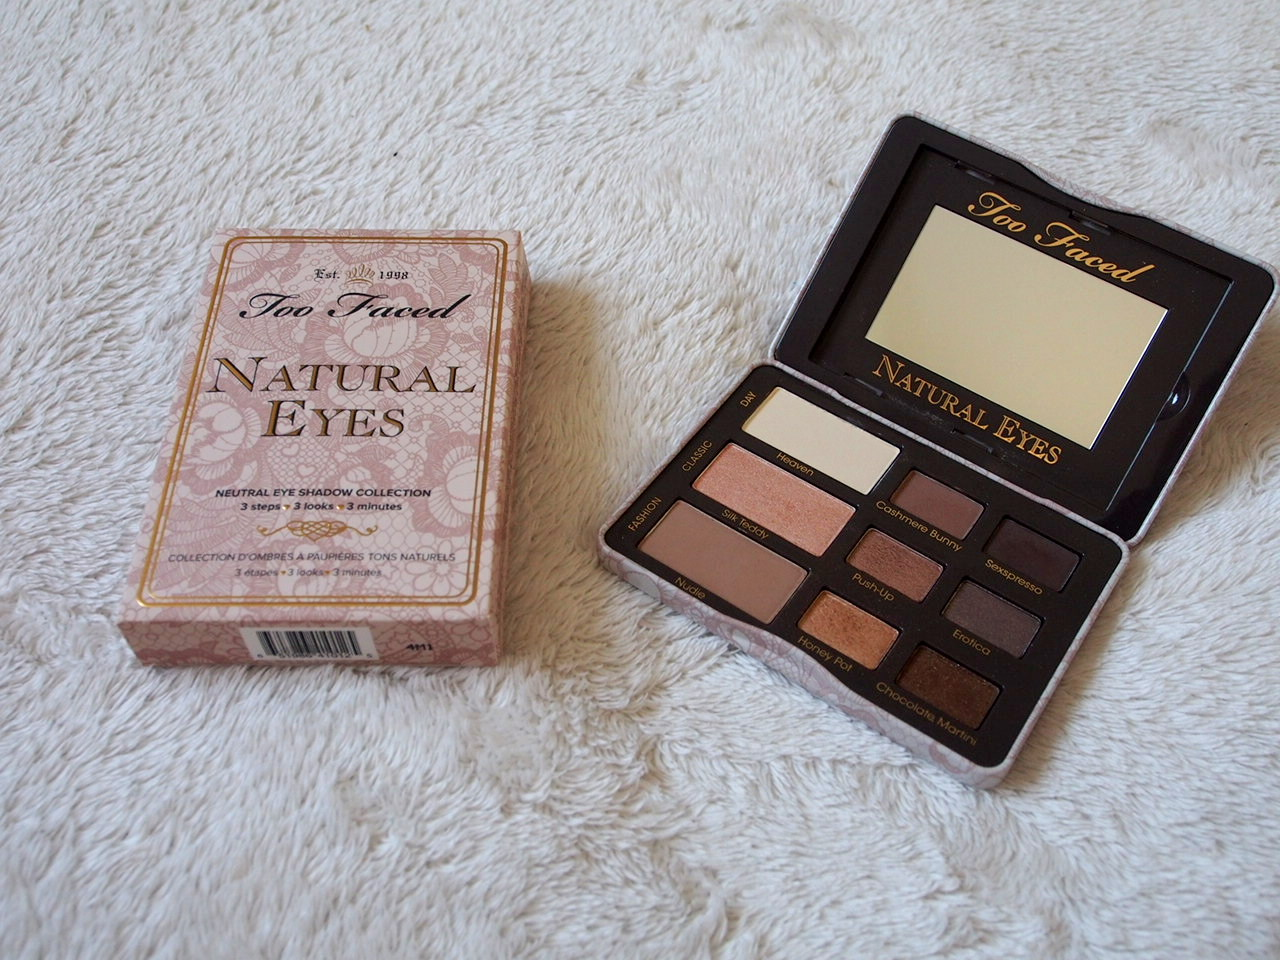 Beauty Chats: Too Faced Natural Eyes Palette.